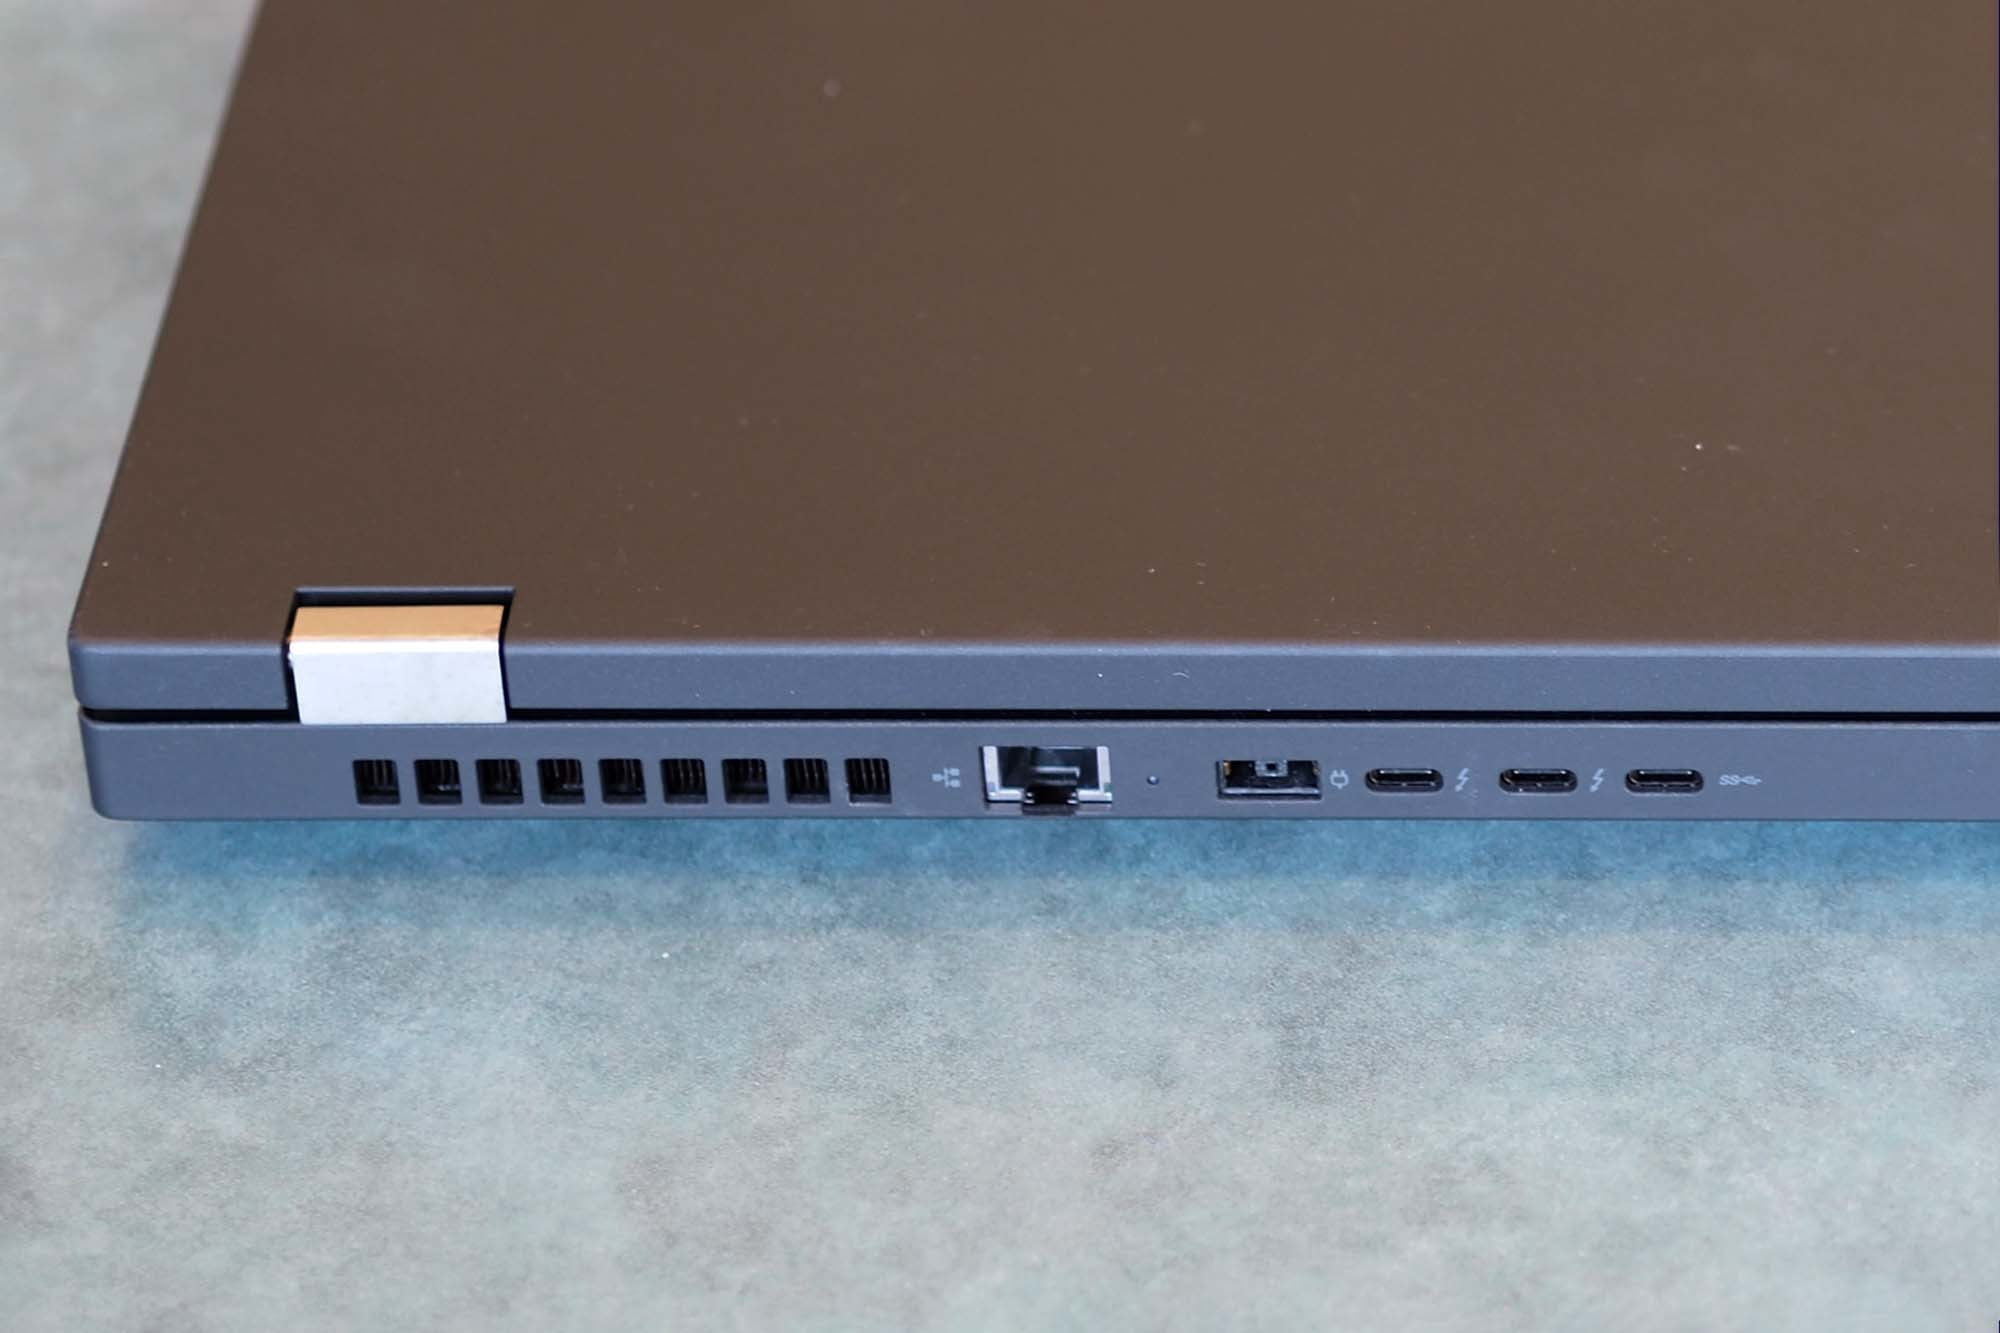 Ethernet cable plugin, charging port, & three micro USB ports on the back of a Lenovo ThinkPad P15 Gen 2 laptop.